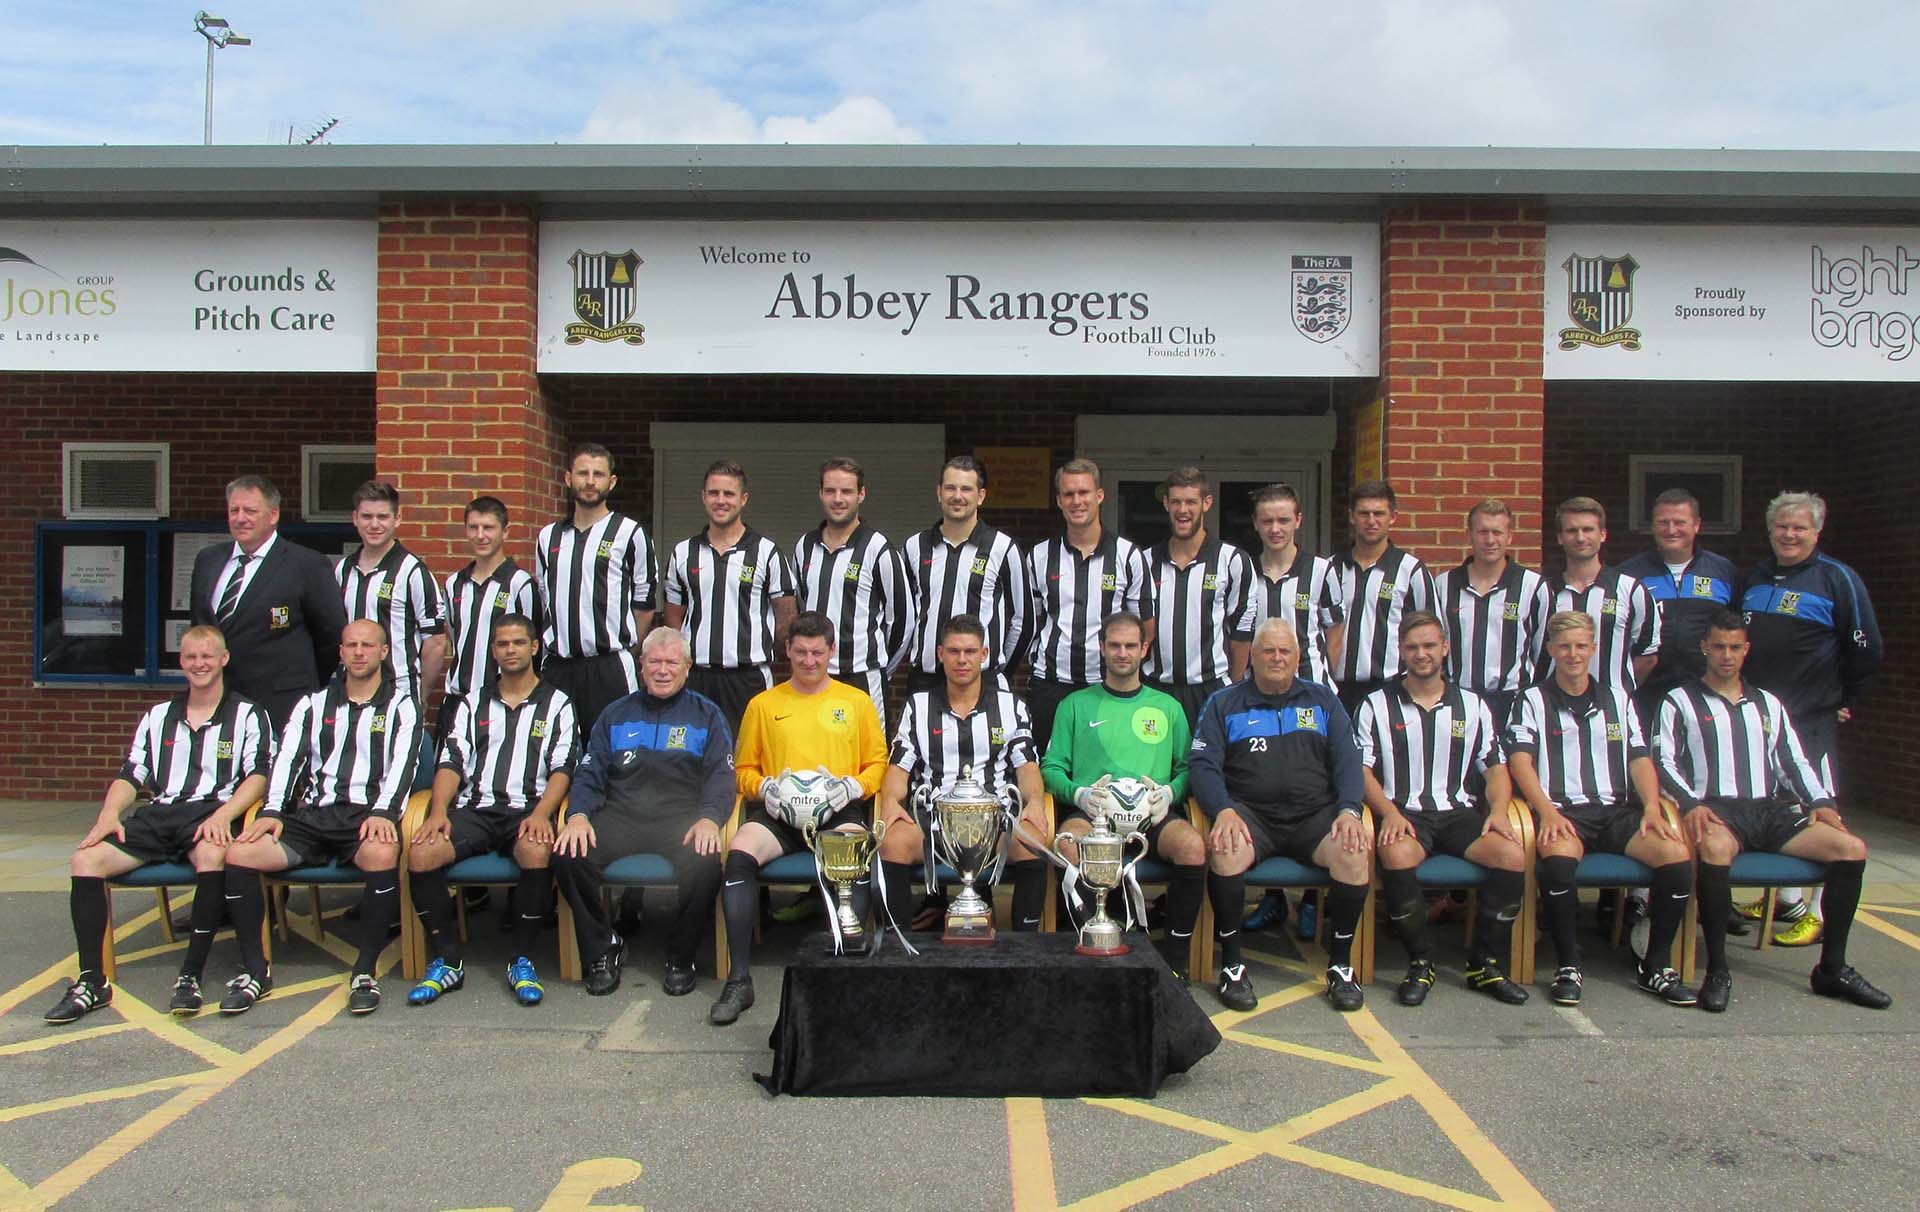 Abbey Rangers with 365 Concrete